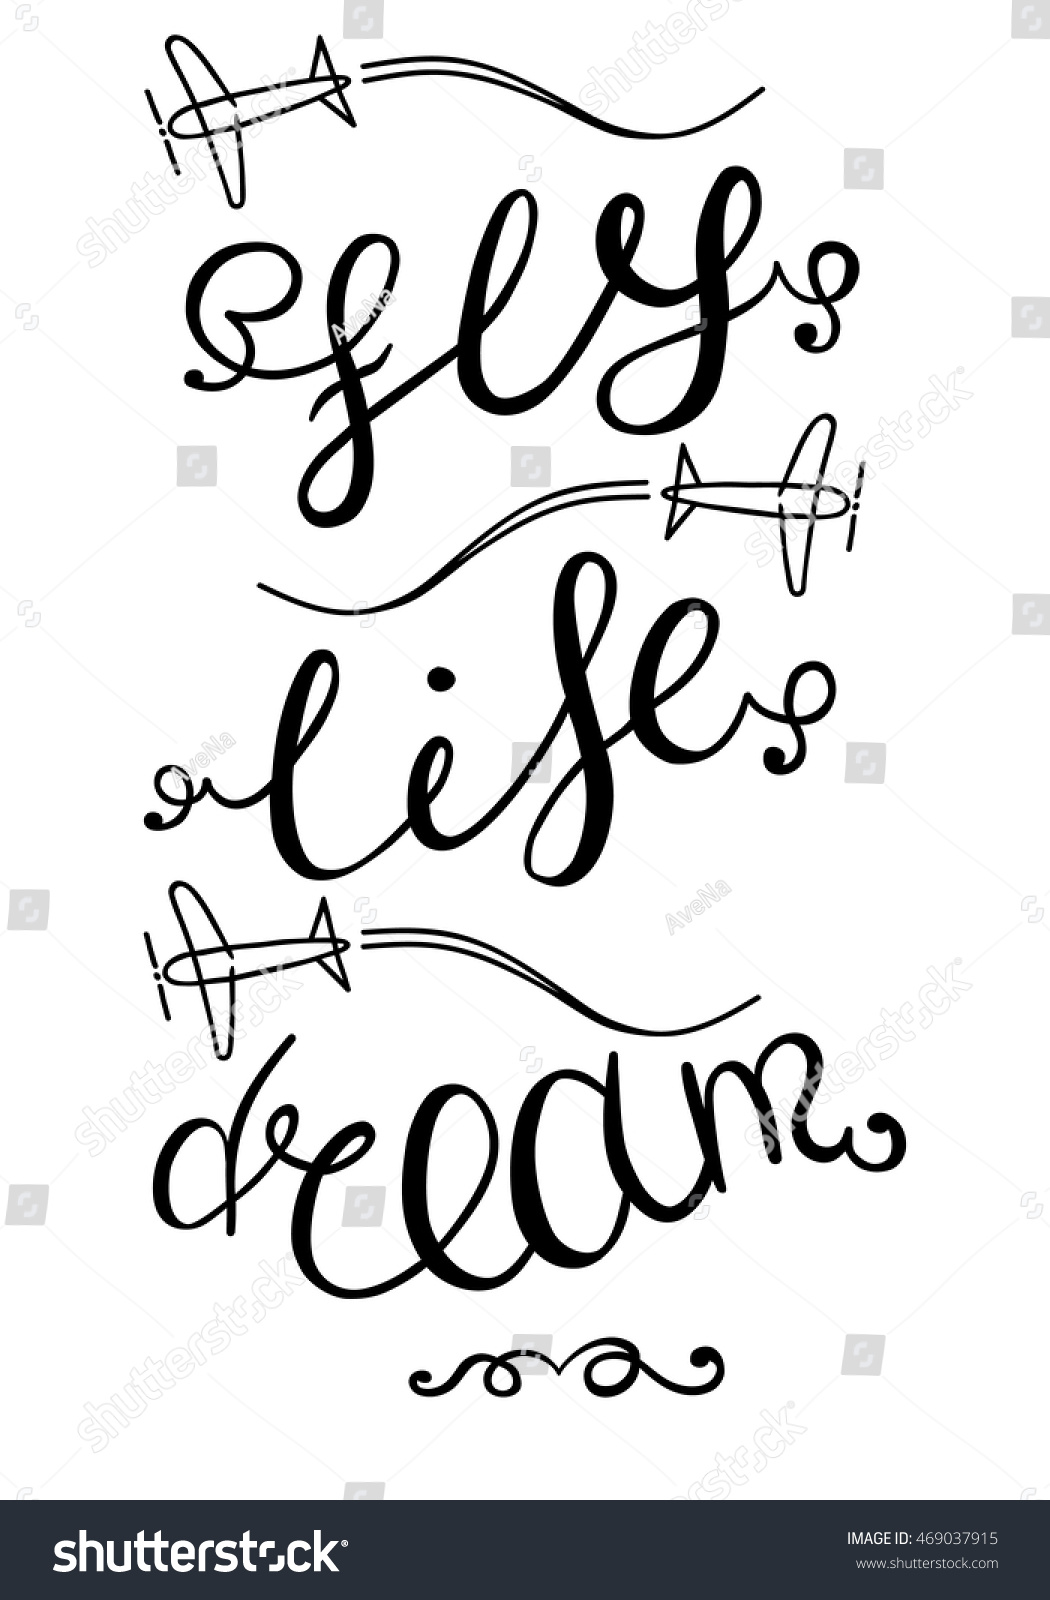 Motivational Words Motivational Words Dream Life Fly Inspirational Stock Vector